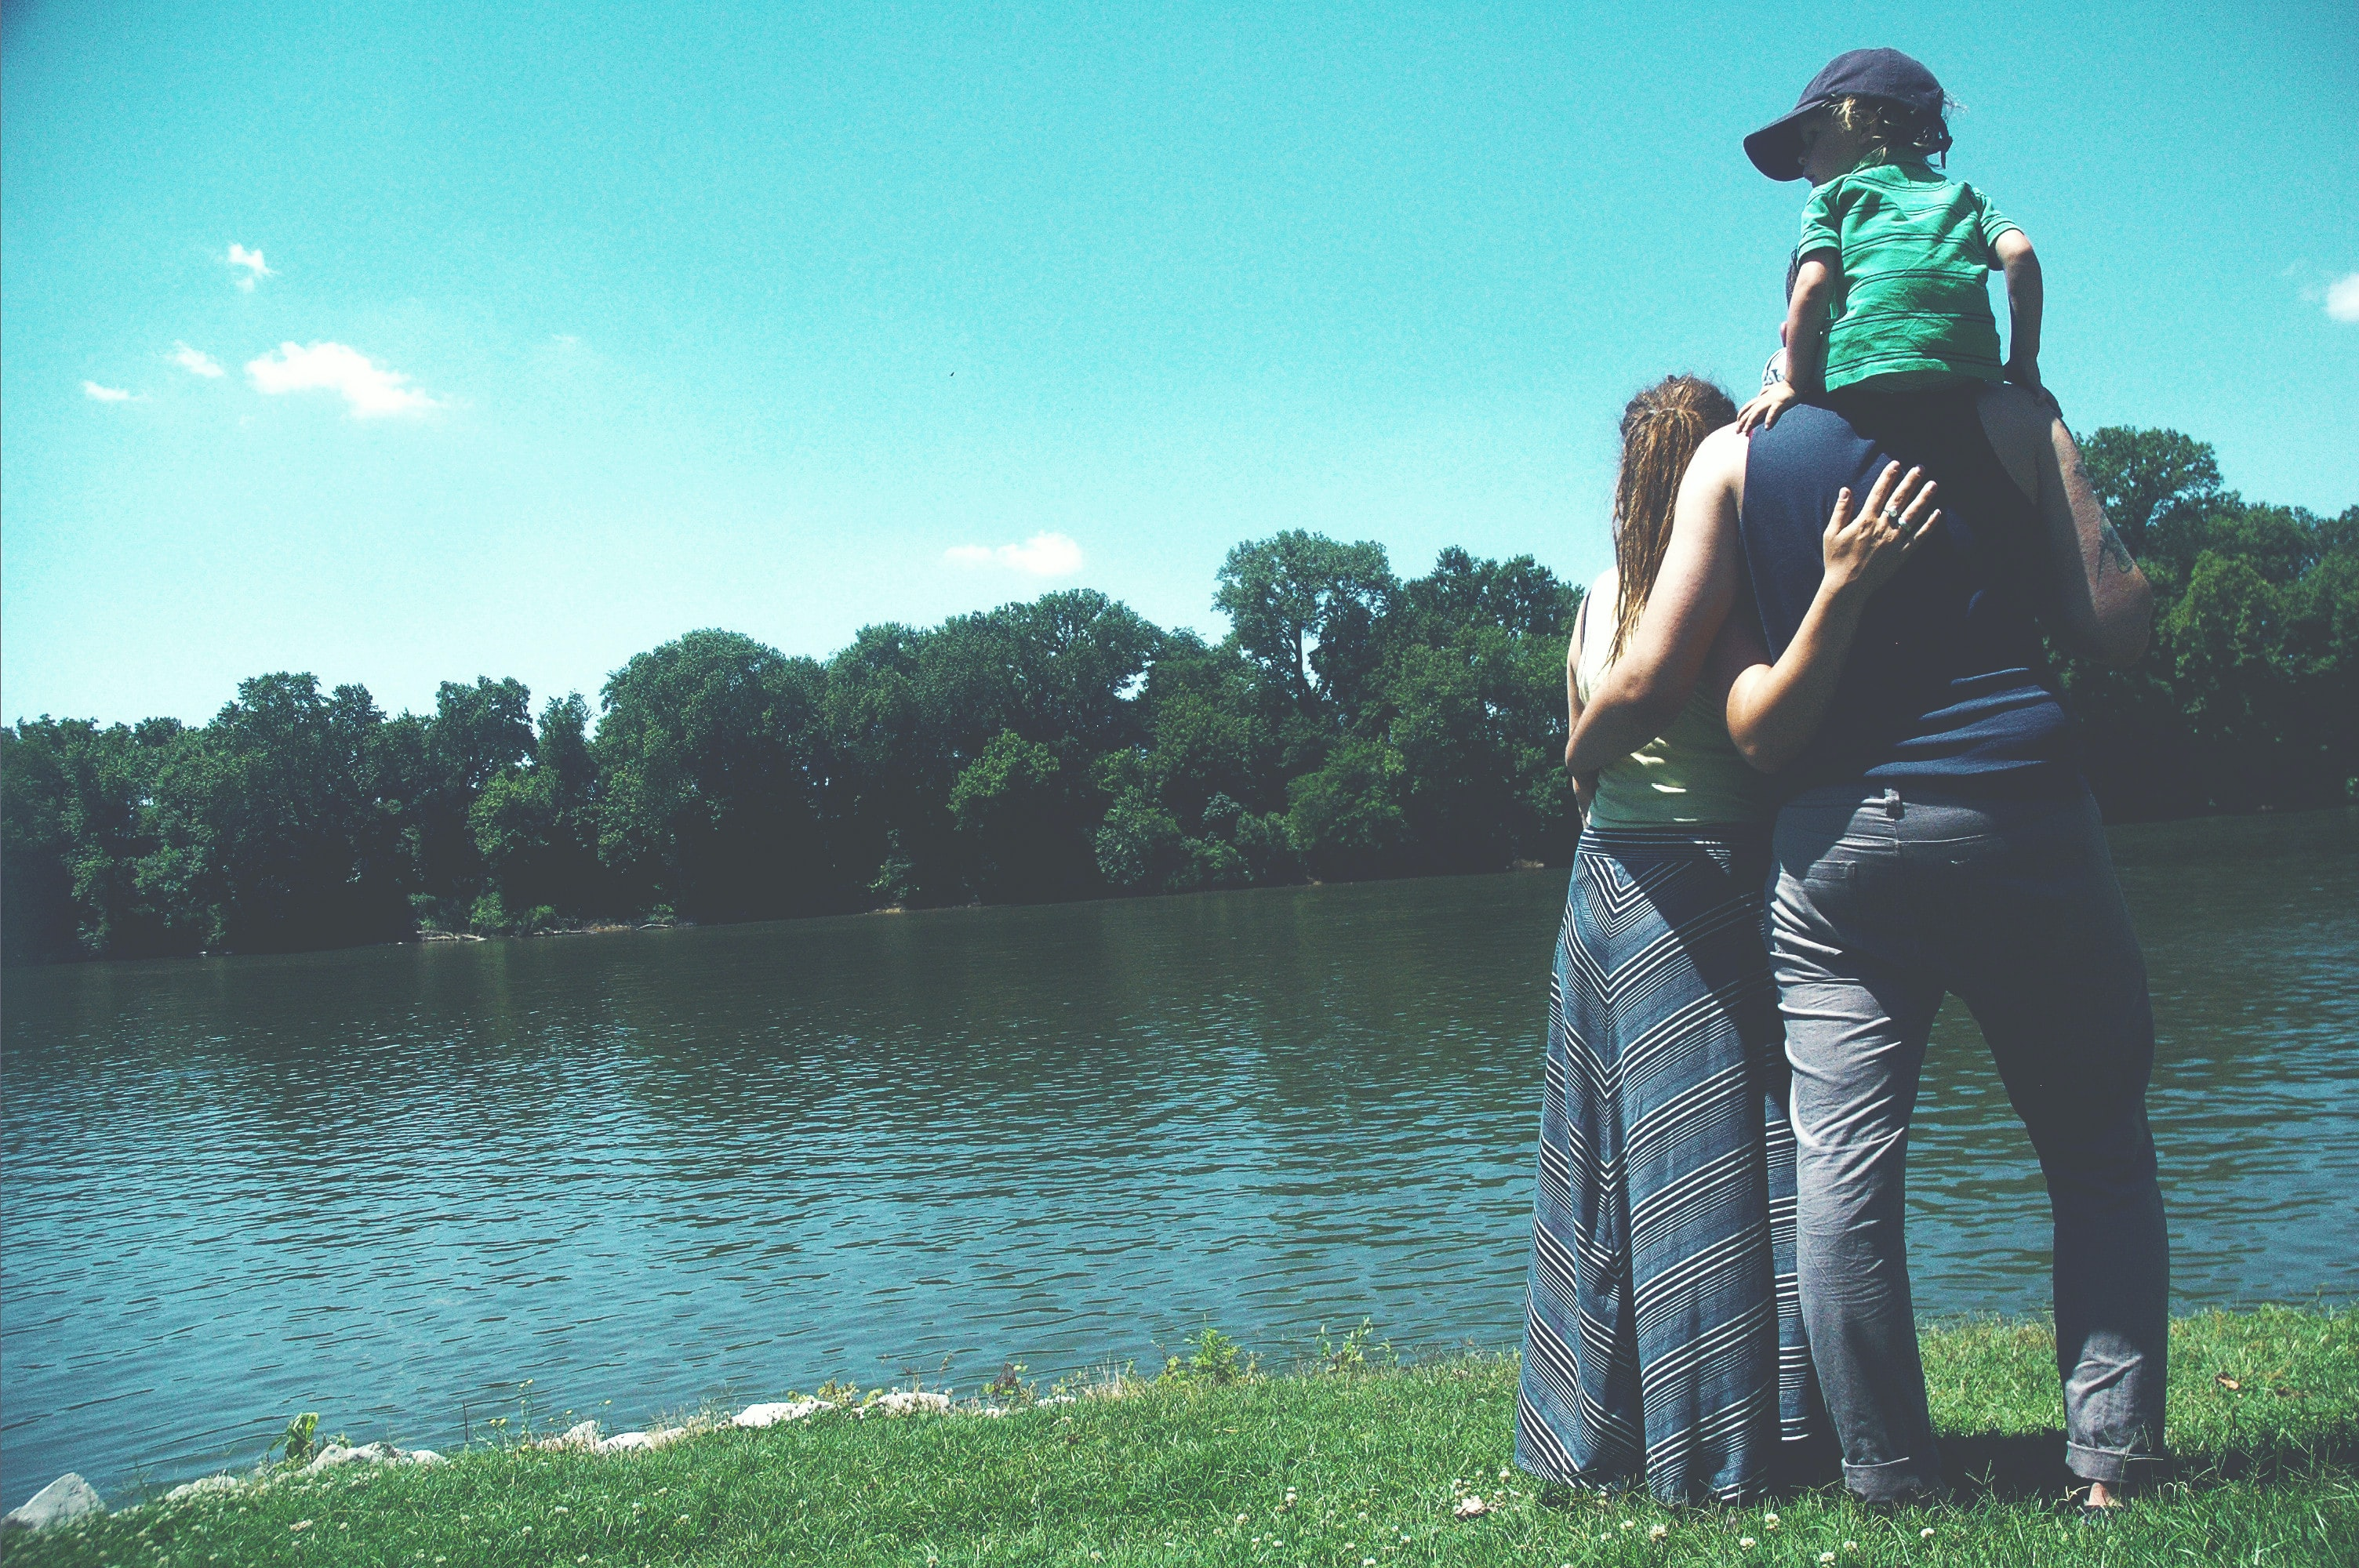 father, mother, and son standing on grass lawn near at body of water during daytime